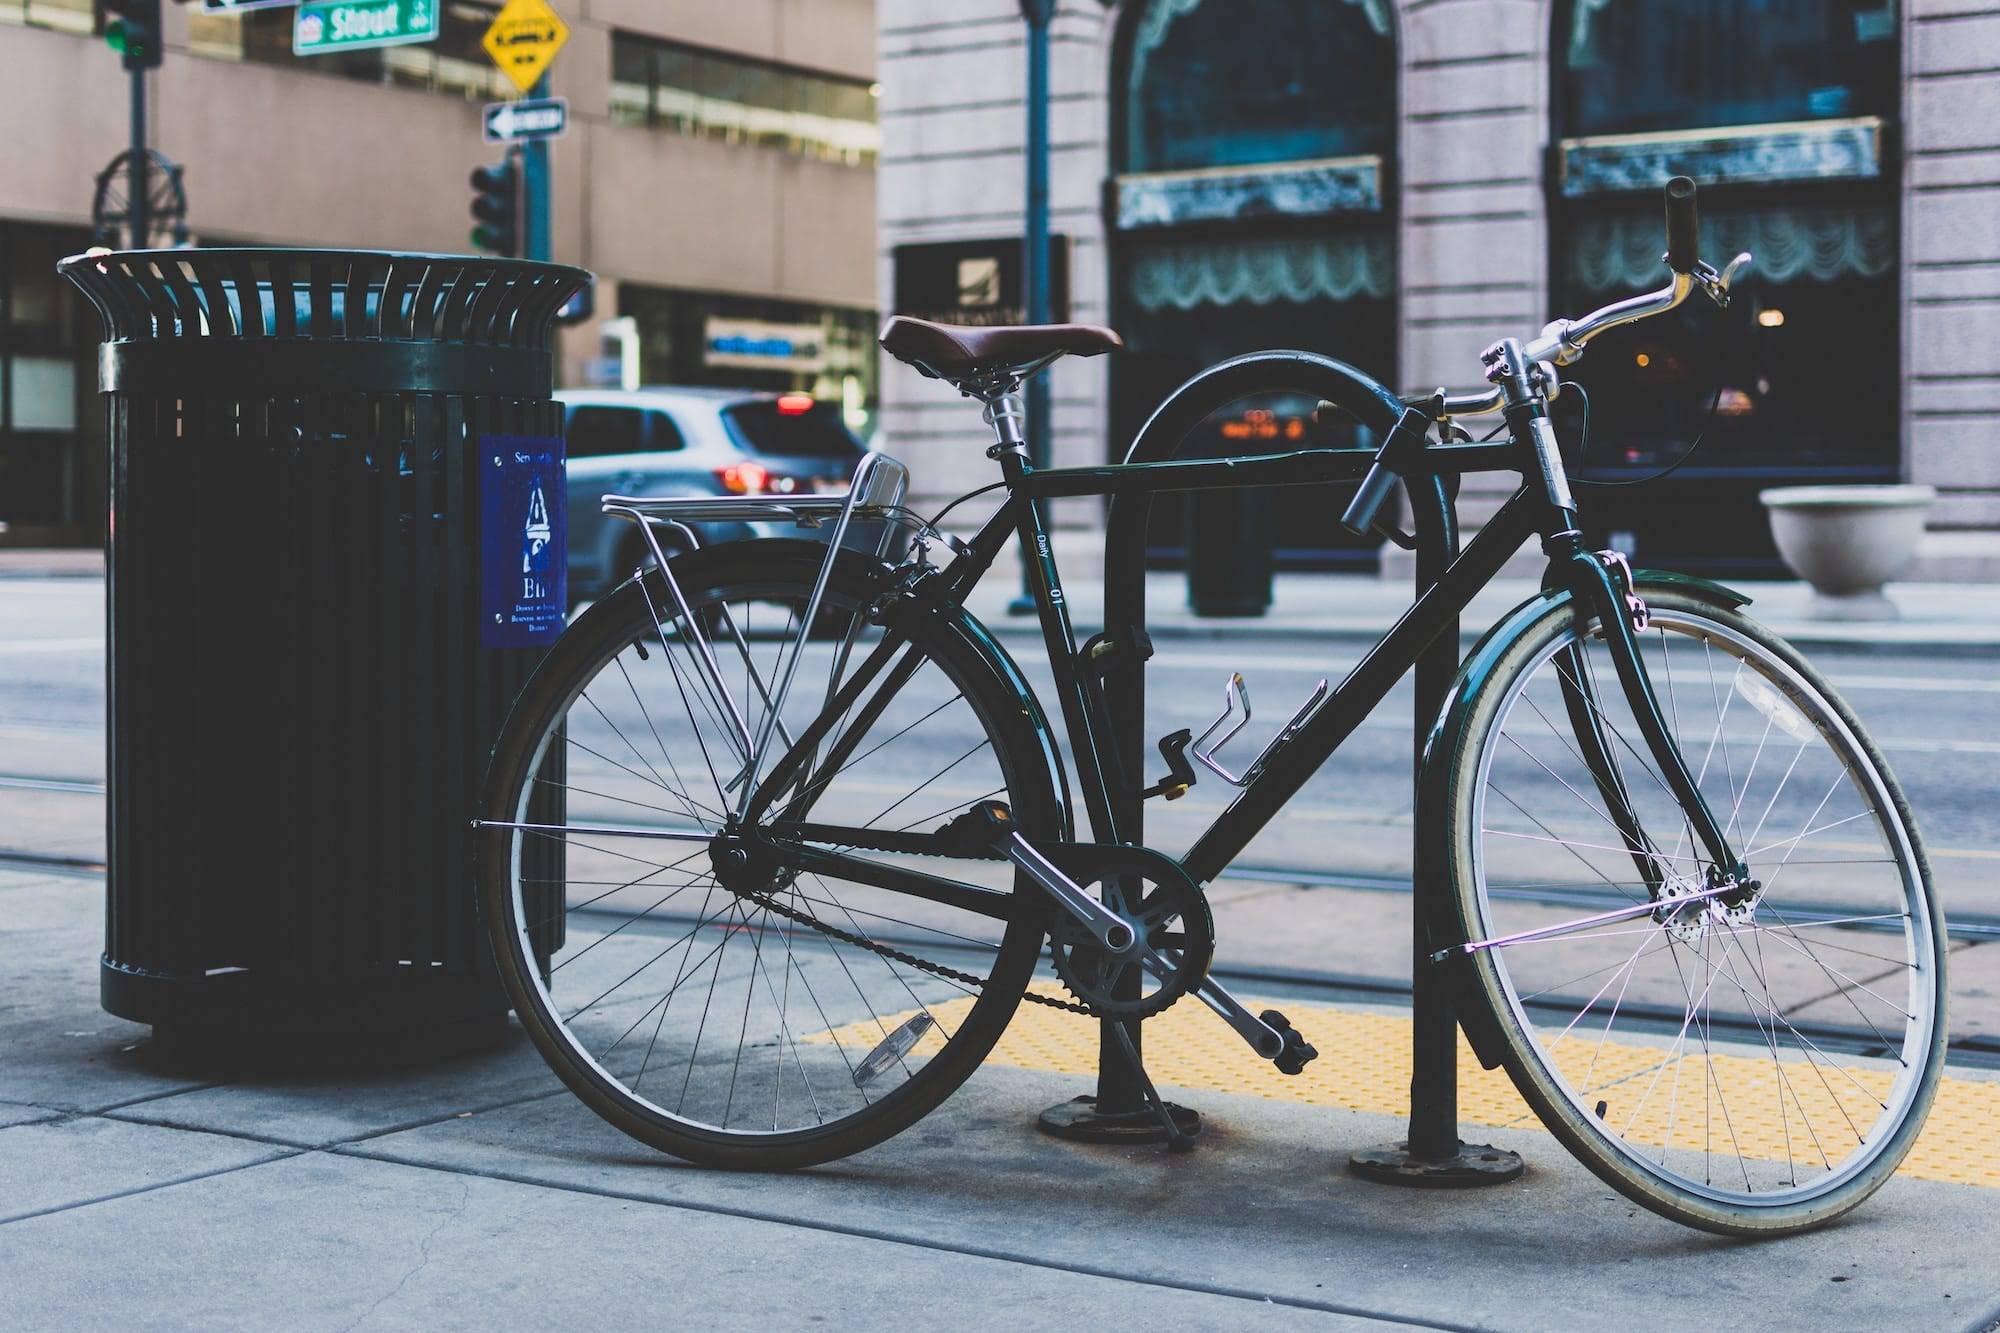 make locking your bike a habit